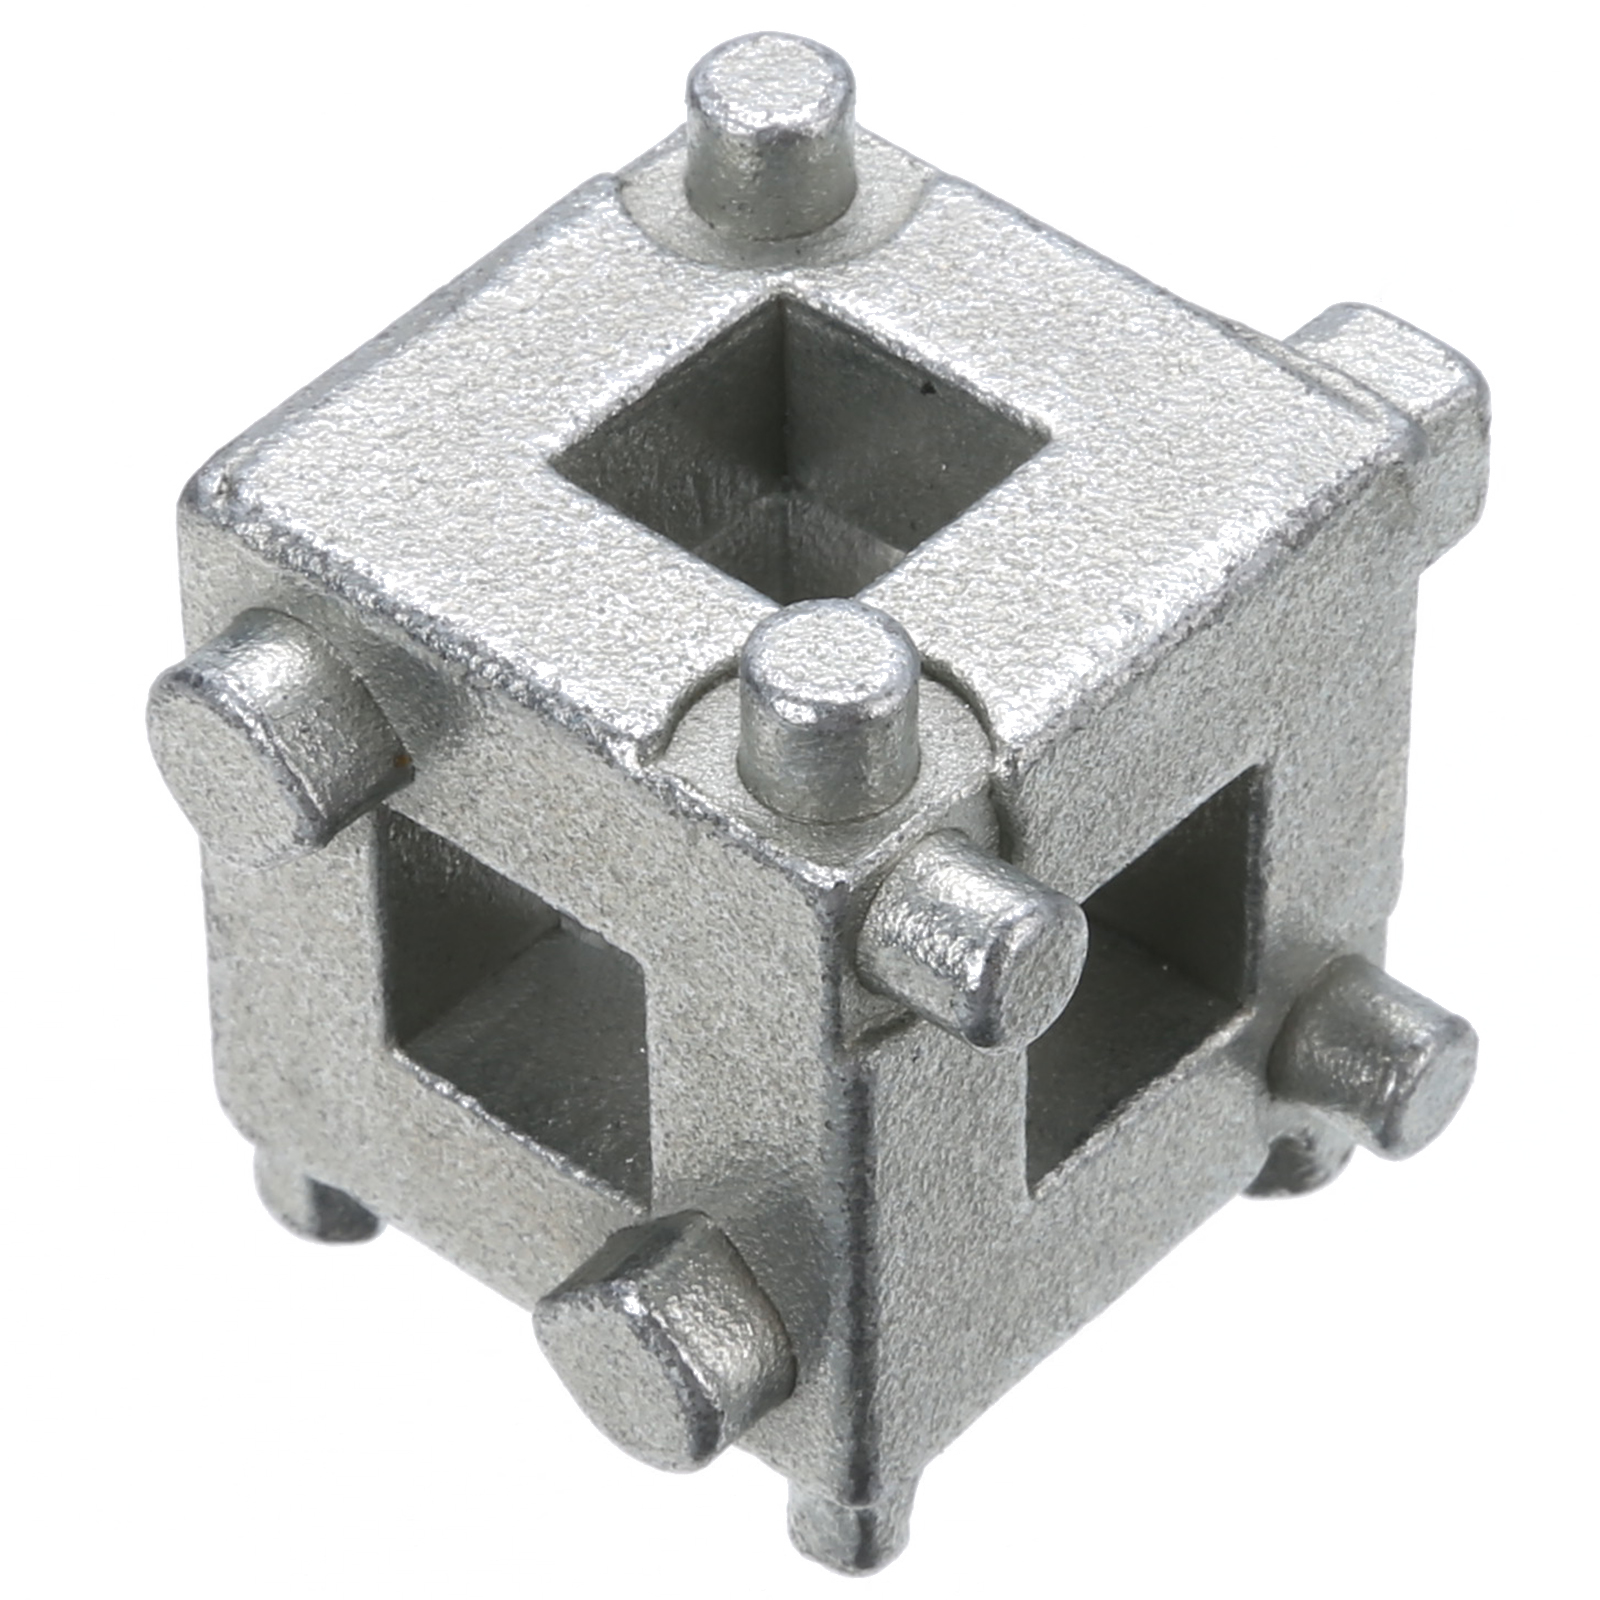 "1pc Hot 3/8"" Auto Vehicle Rear Disc Brake Piston Caliper Wind Back Cube 3/8"" Disc Brake Piston Cube Carbon Steel Metal Car Tool"